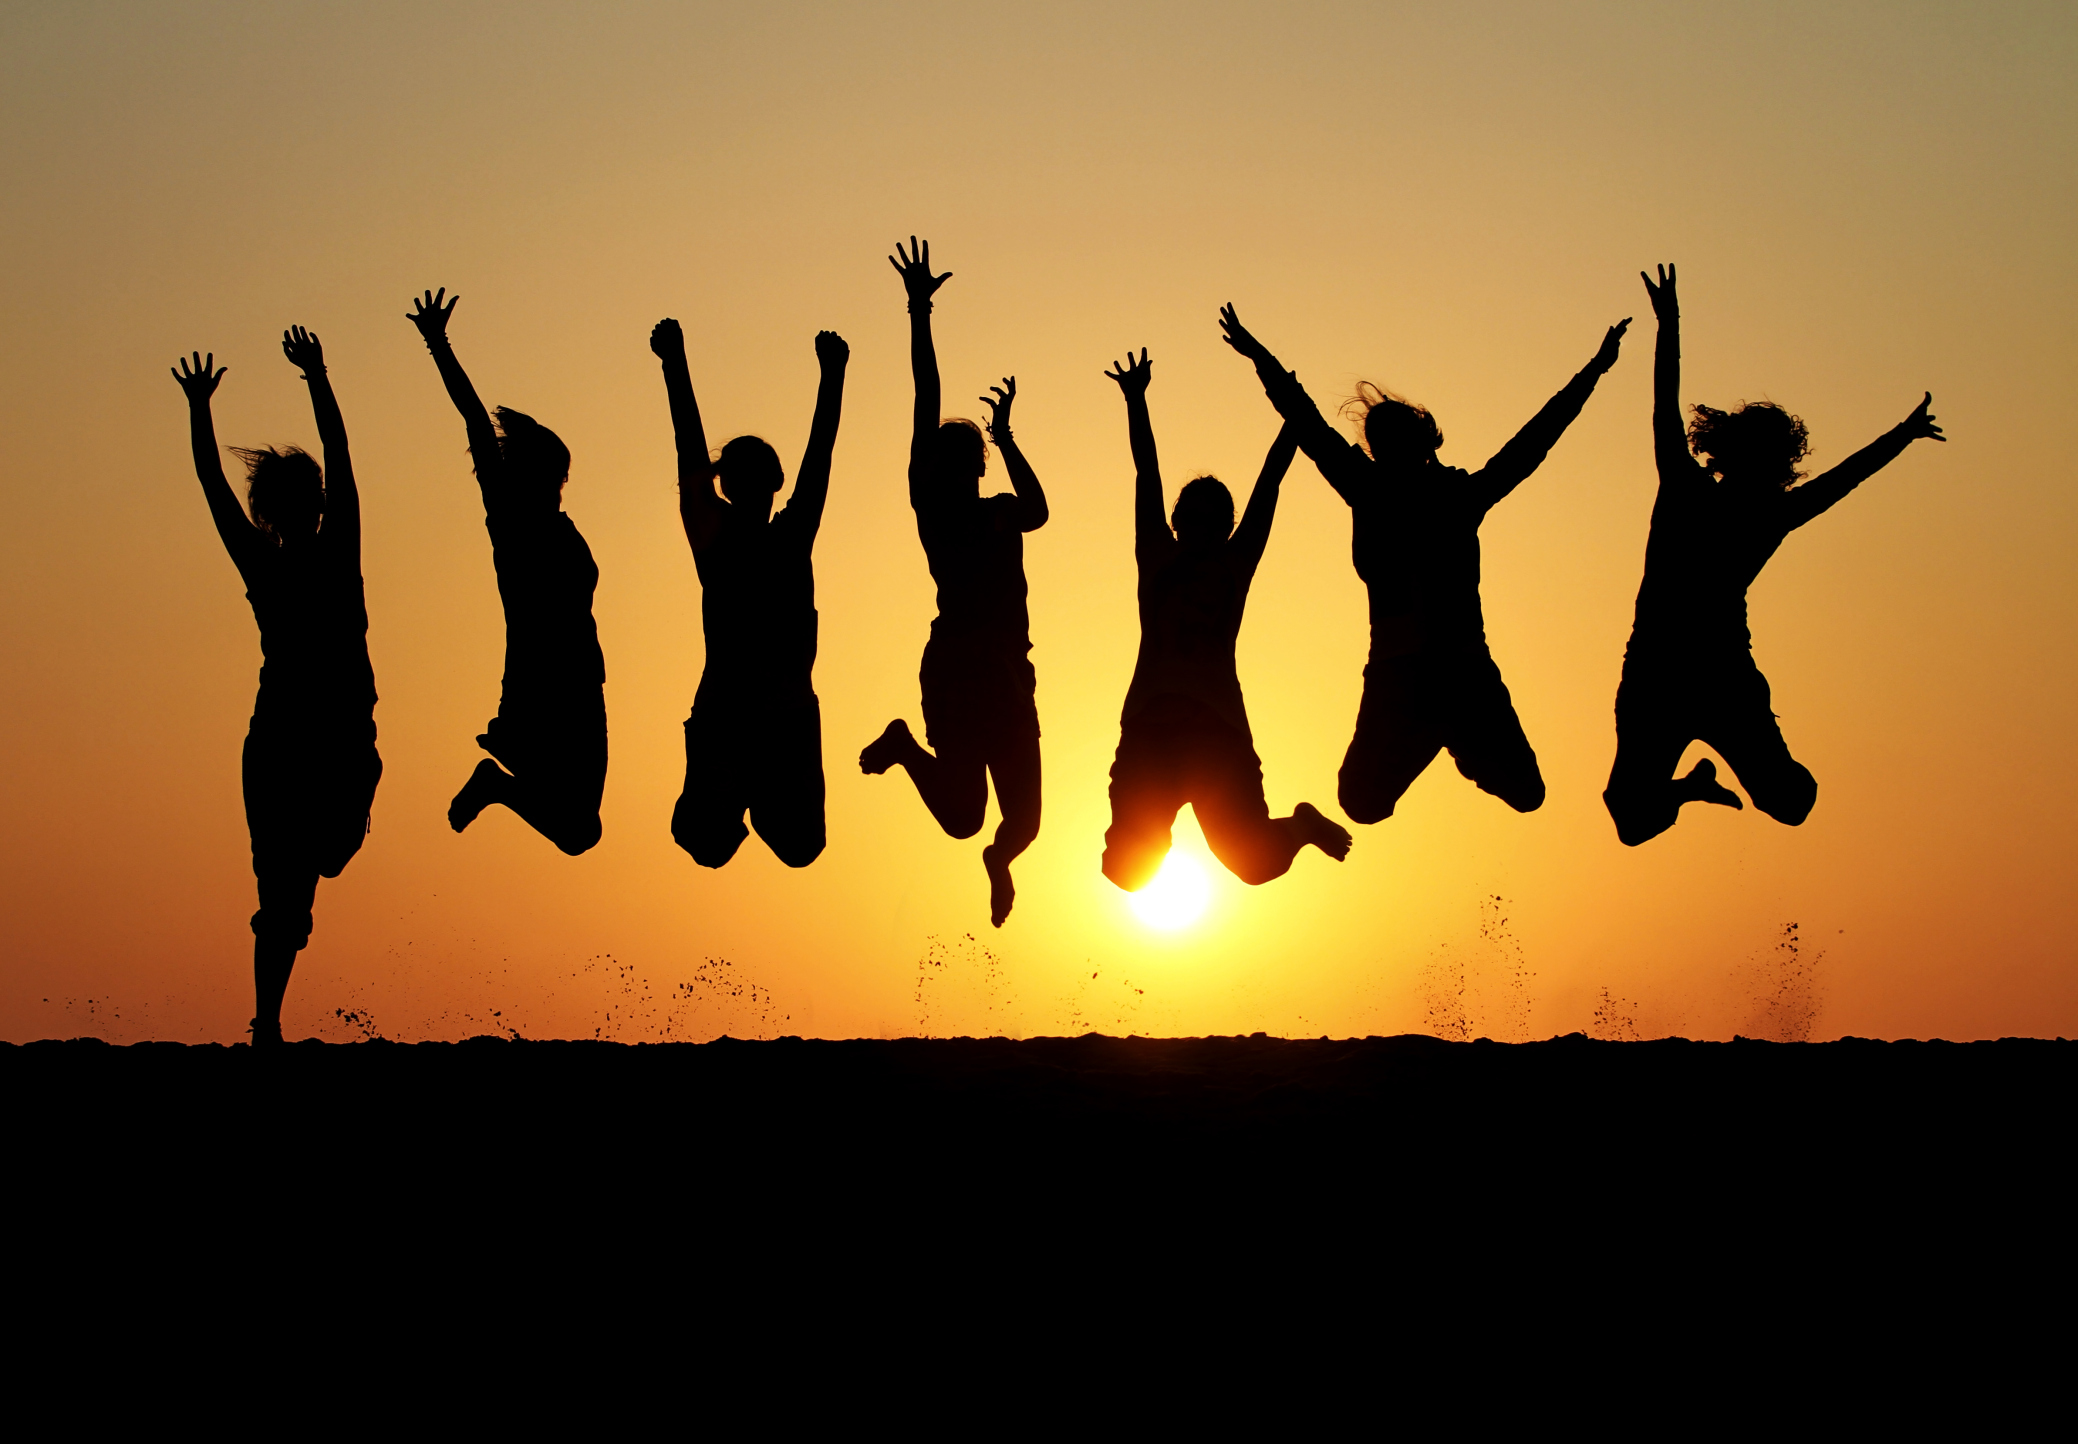 excited people jumping - 5 Ways a Web Portal Can Excite Your Clients